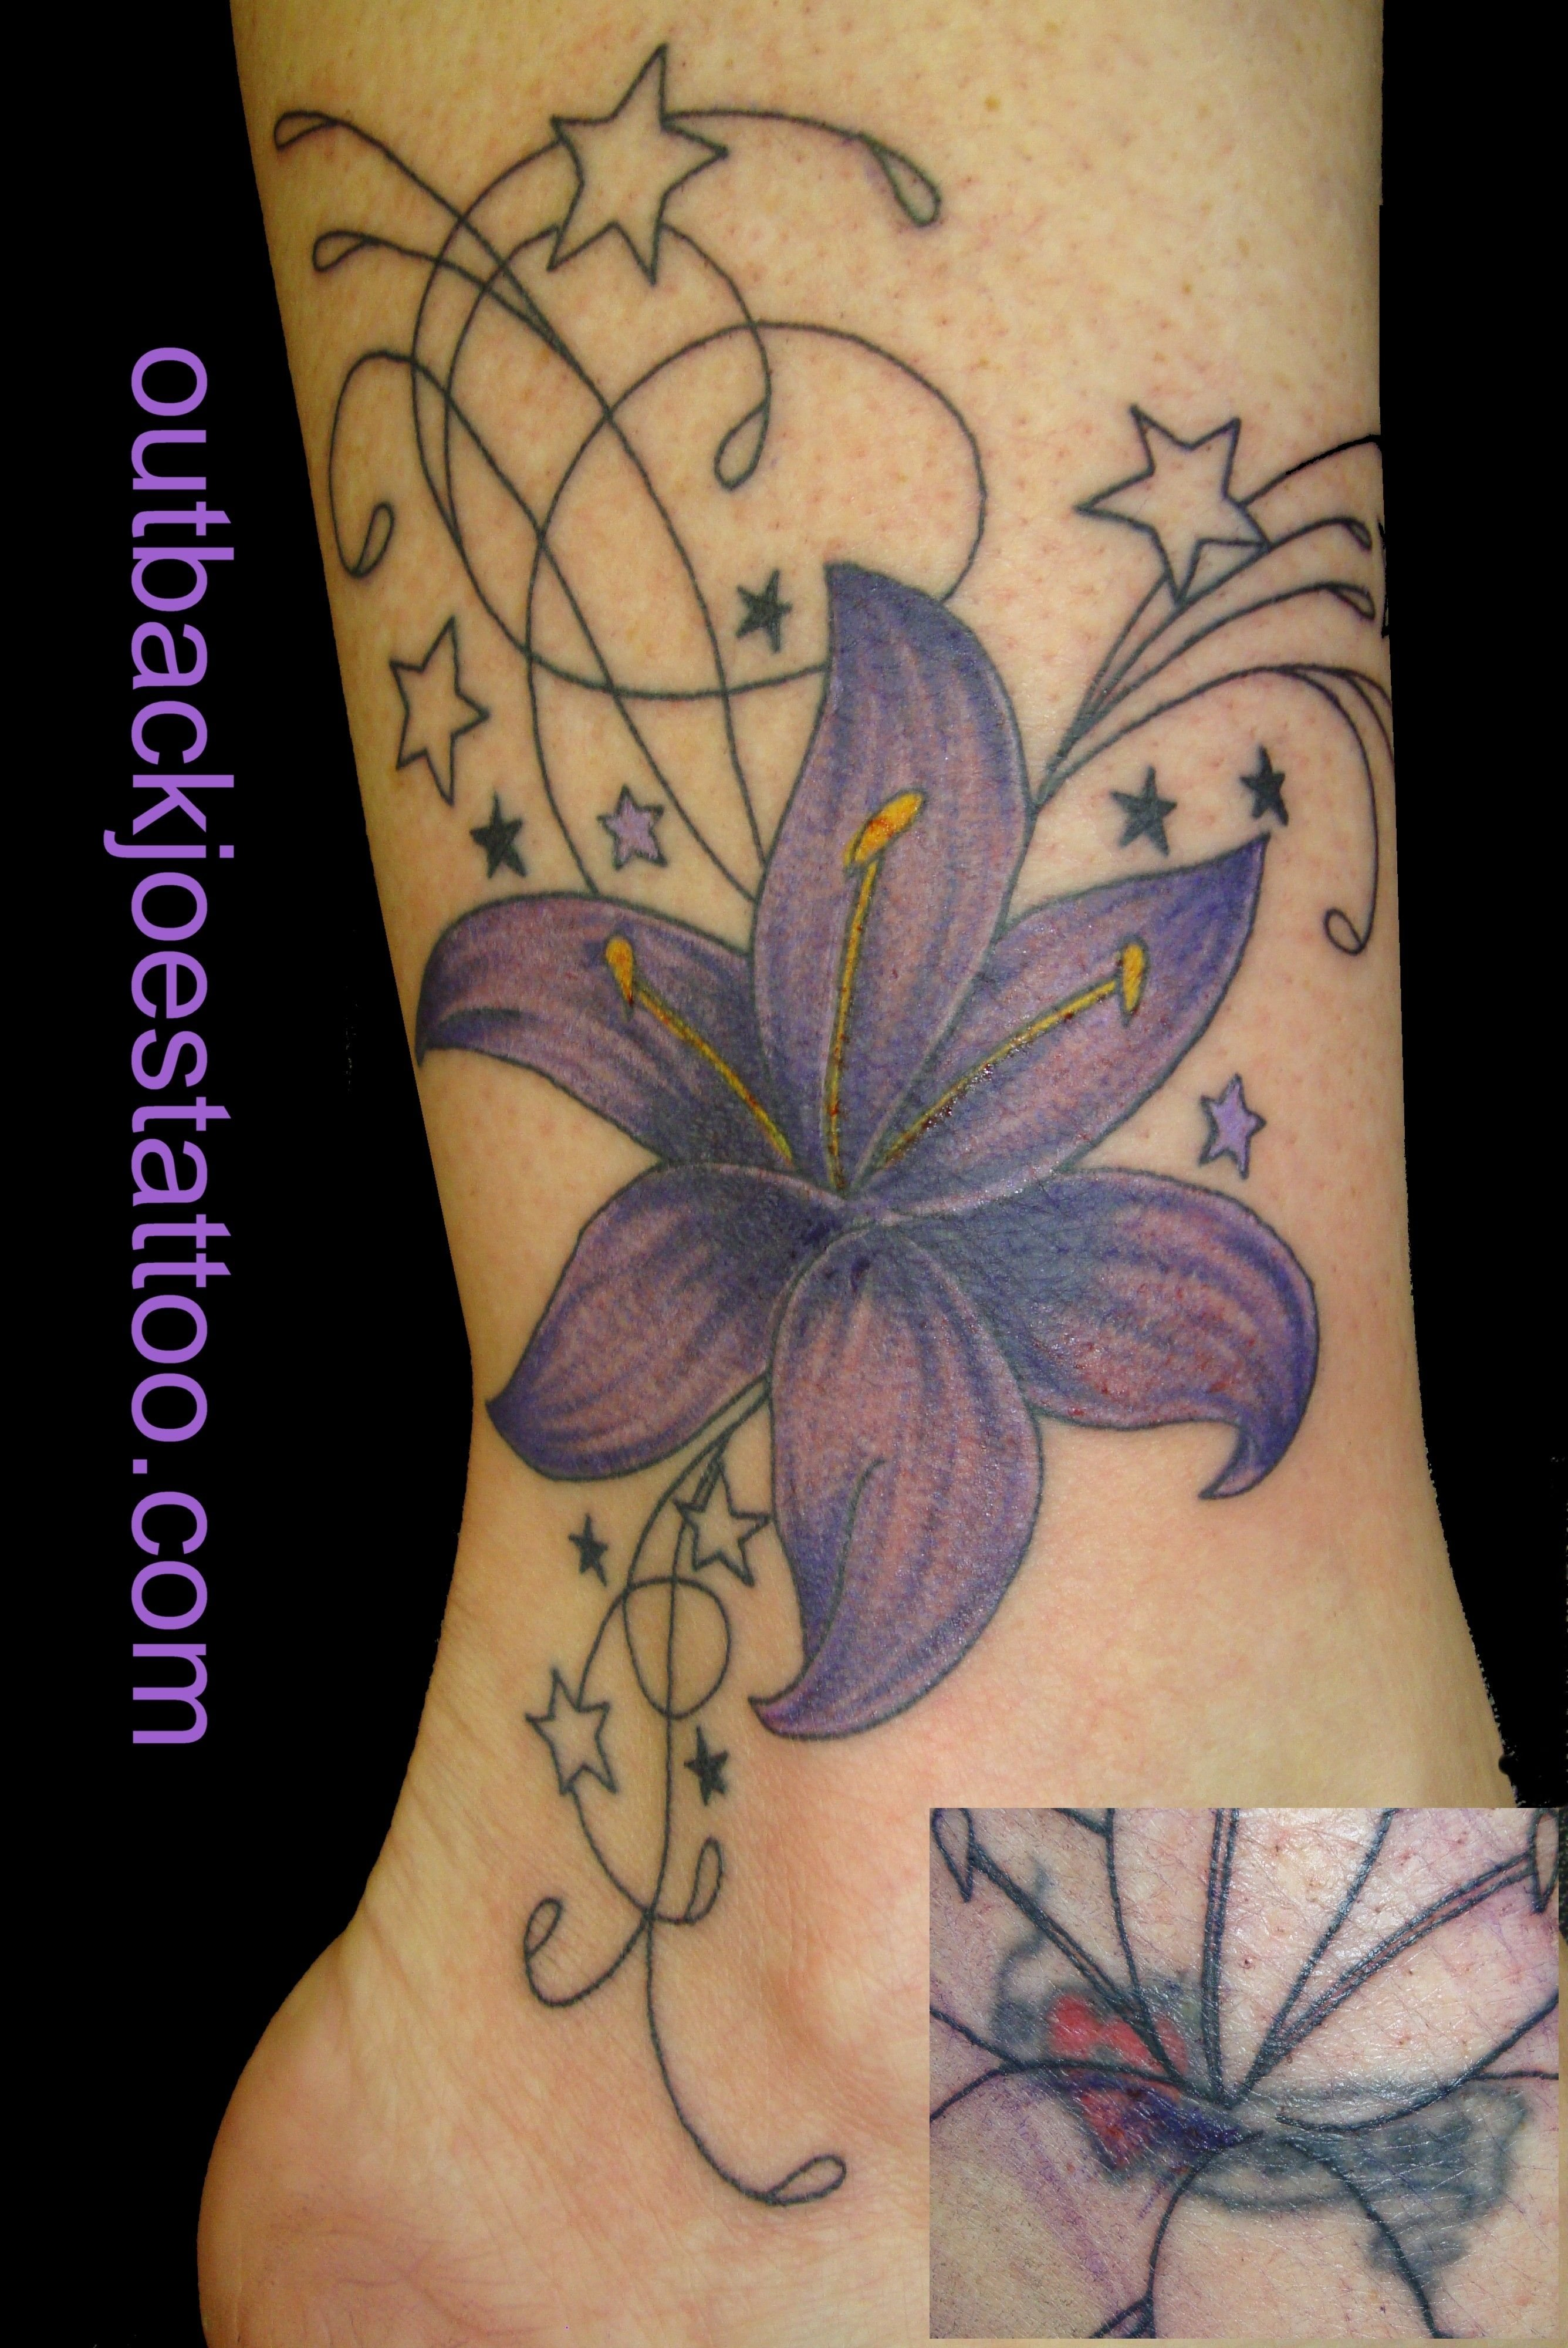 10 Cute Back Tattoo Cover Up Ideas flower tattoos cover up tattoo flowers cover up flower cover up 2020